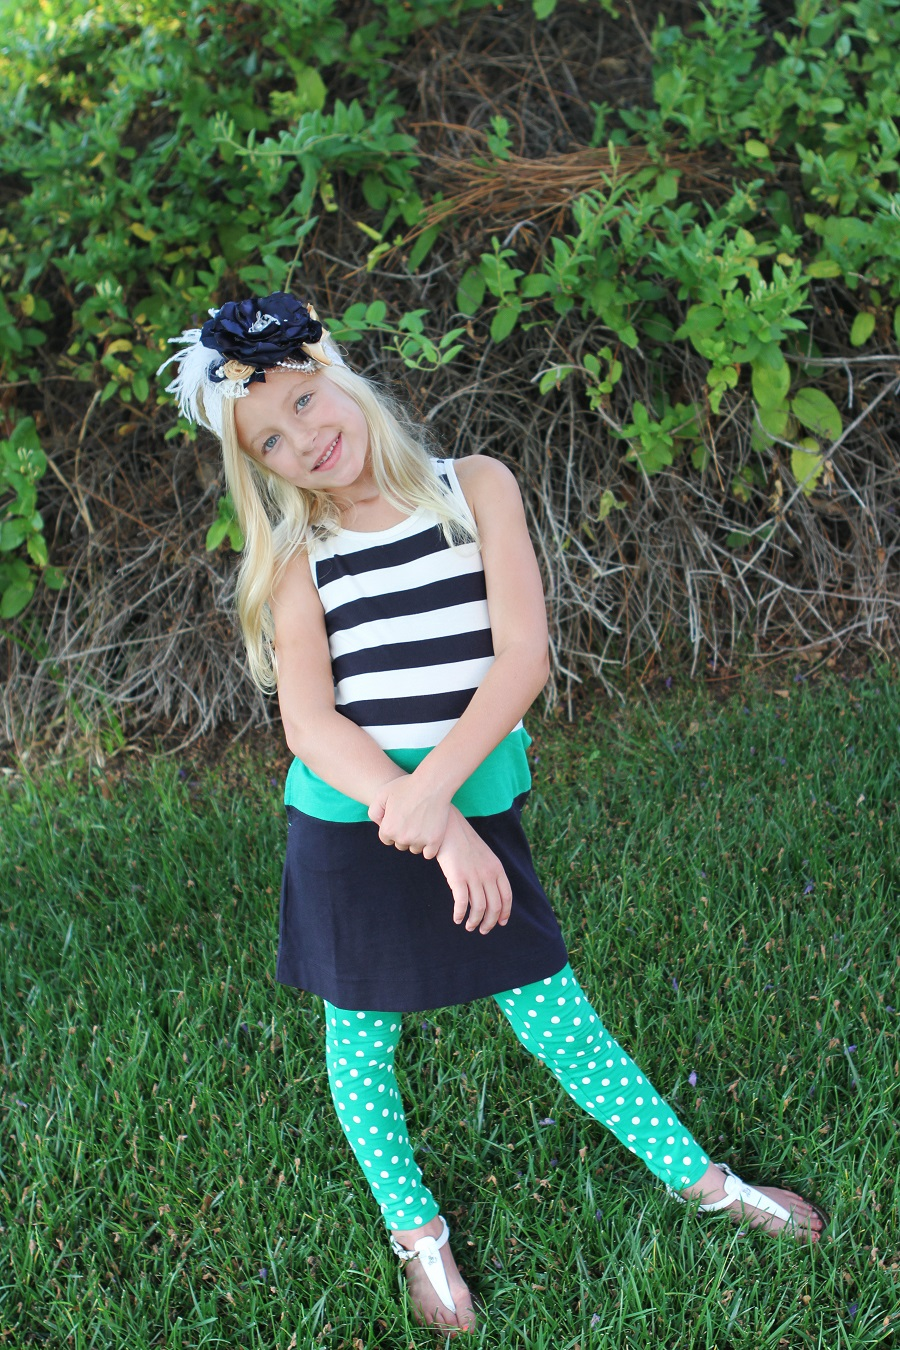 Little Girls Nails And Girls On Pinterest: Little Girls Fashion Featuring Miss J Handmade Designs